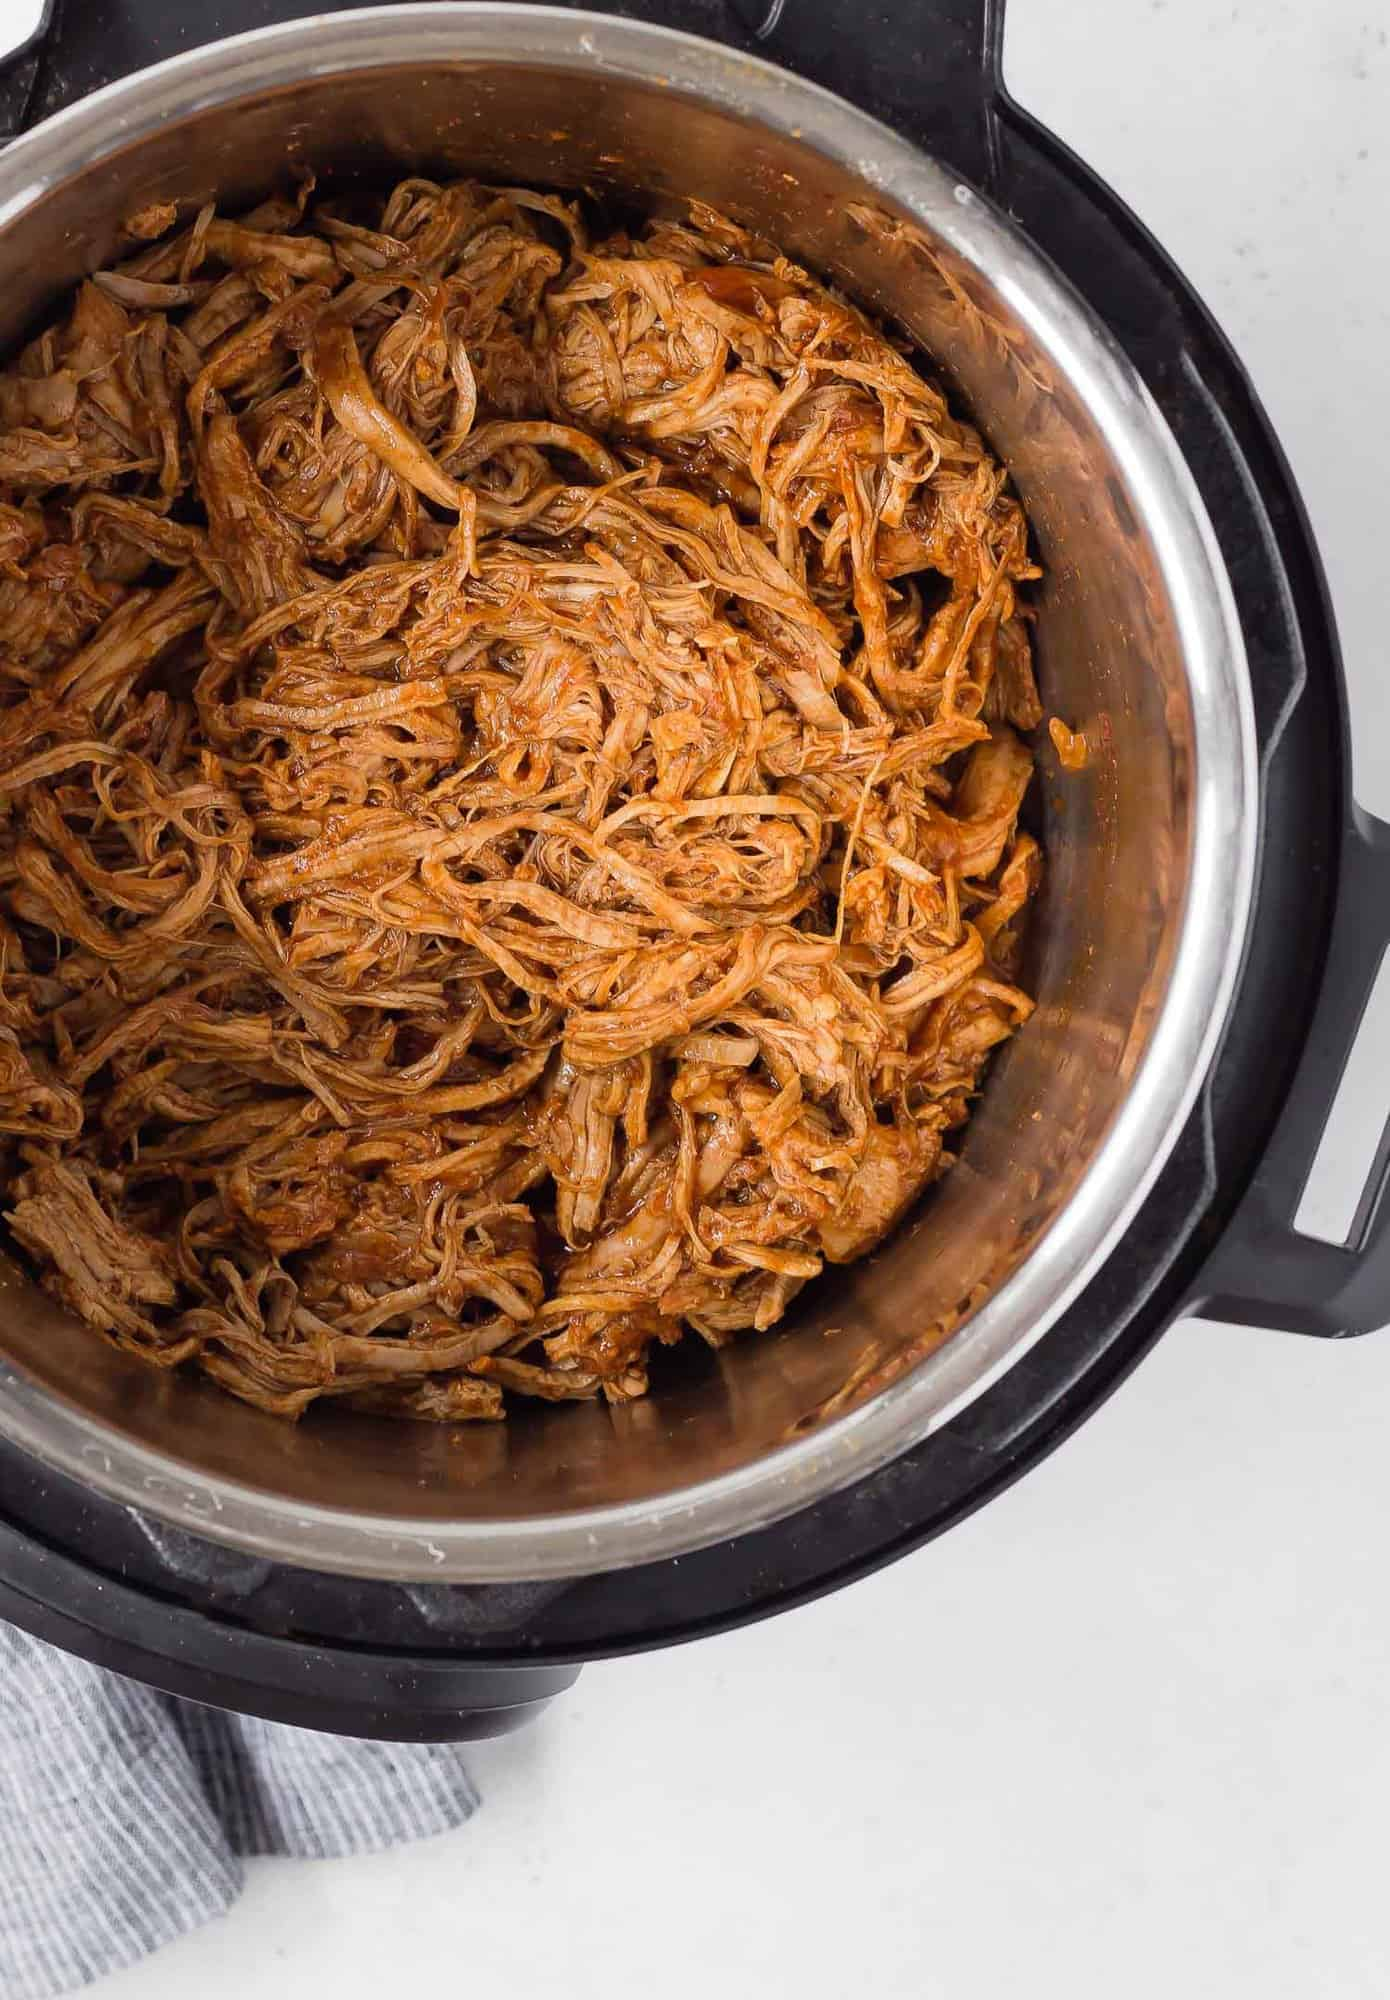 Instant pot Pulled pork in the instant pot, taken from overhead.